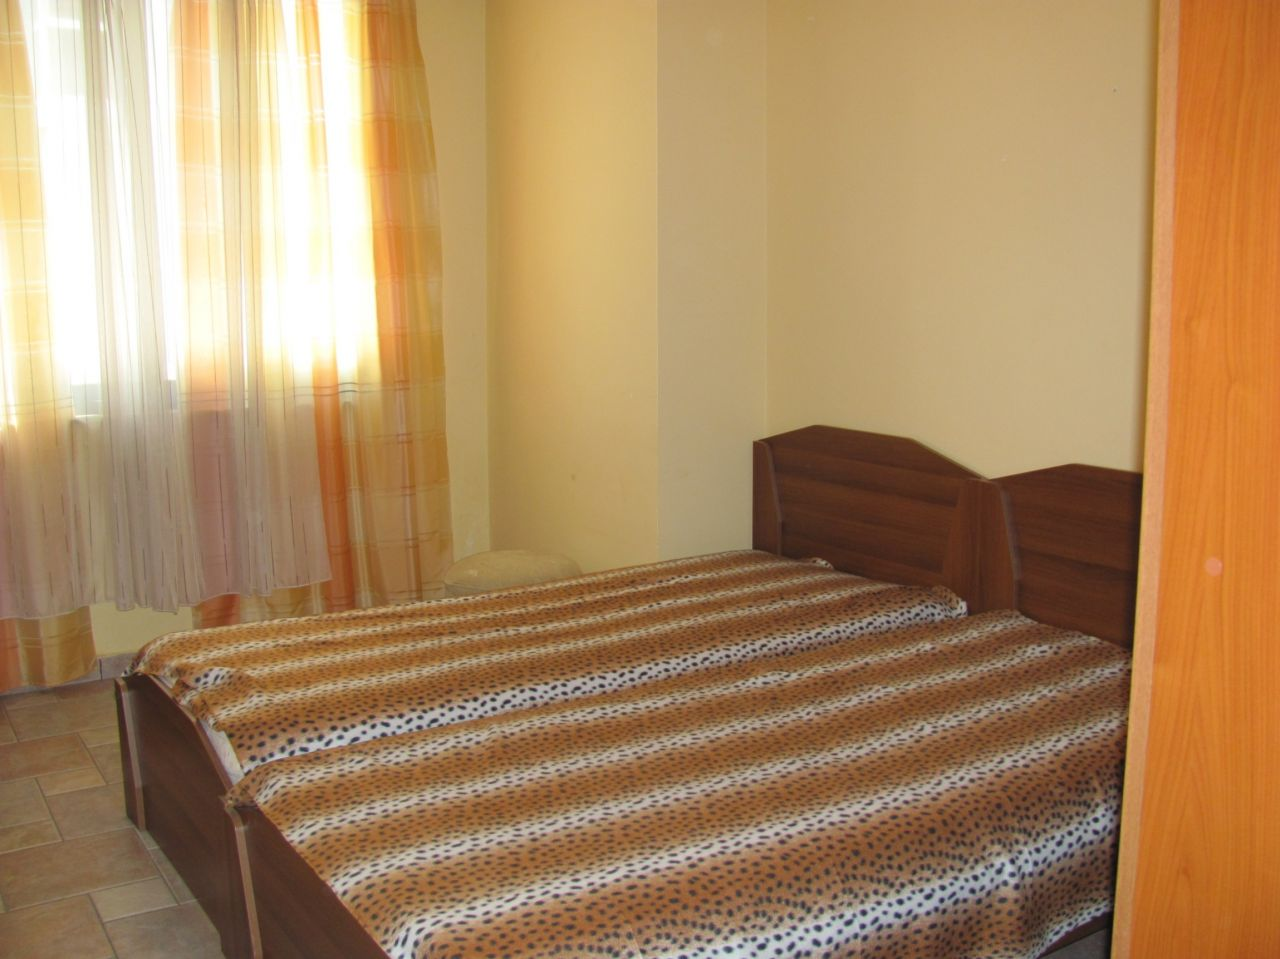 furnished apartment with 1 bedroom for sale in tirana, albania.